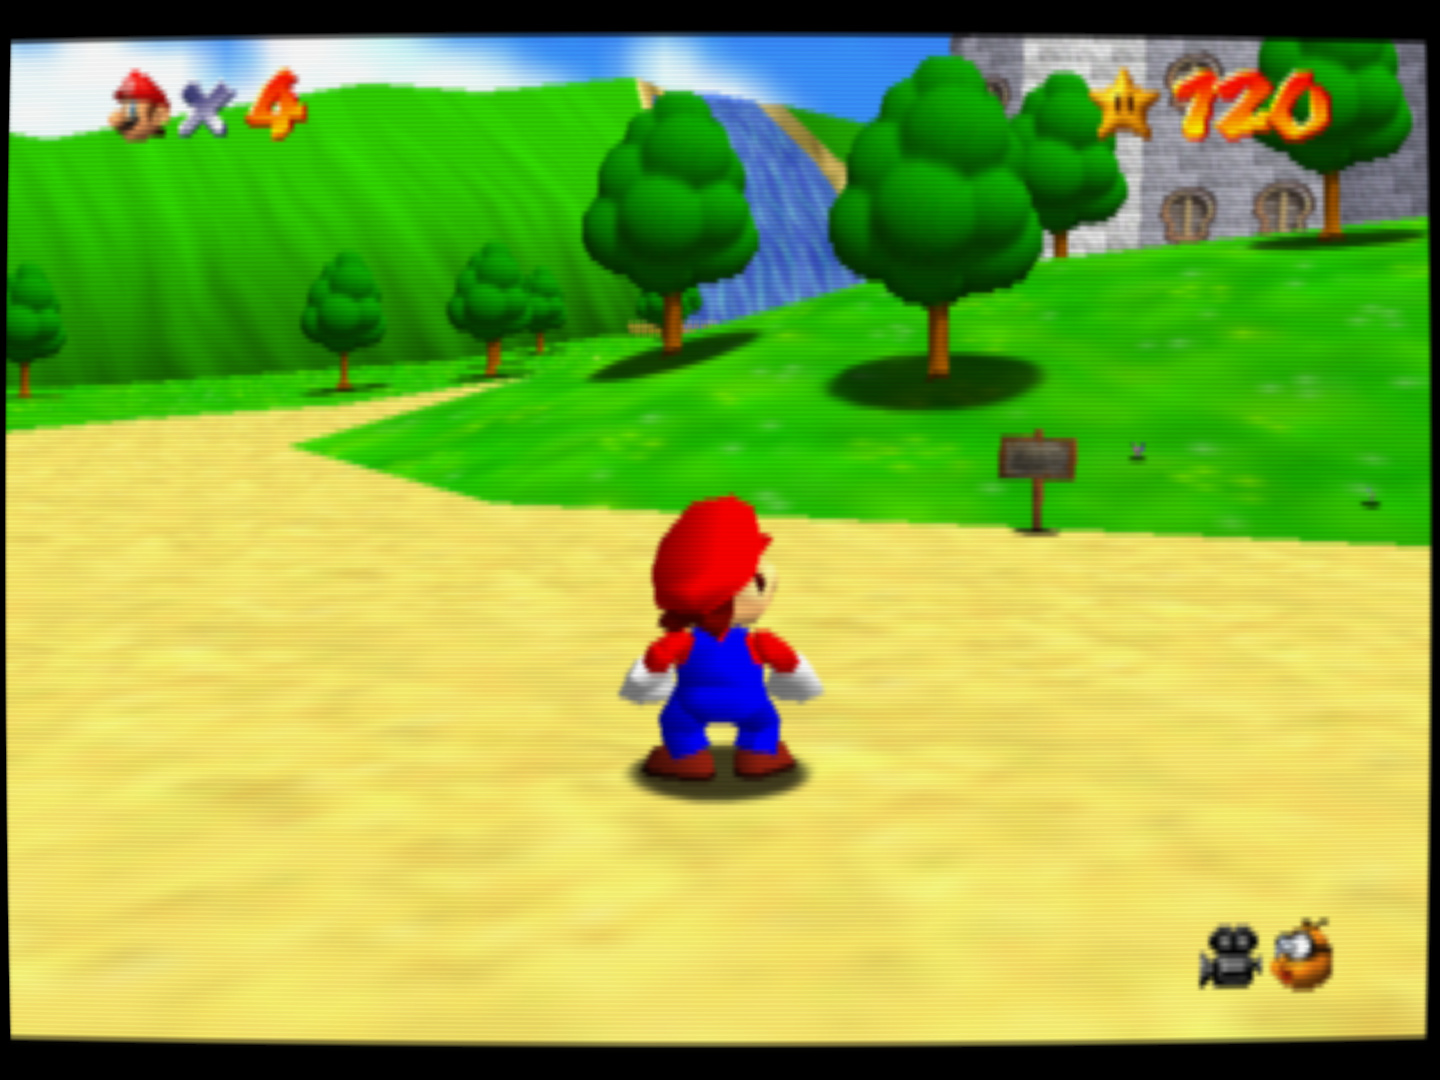 The quest for N64 perfection - Shaders - Libretro Forums